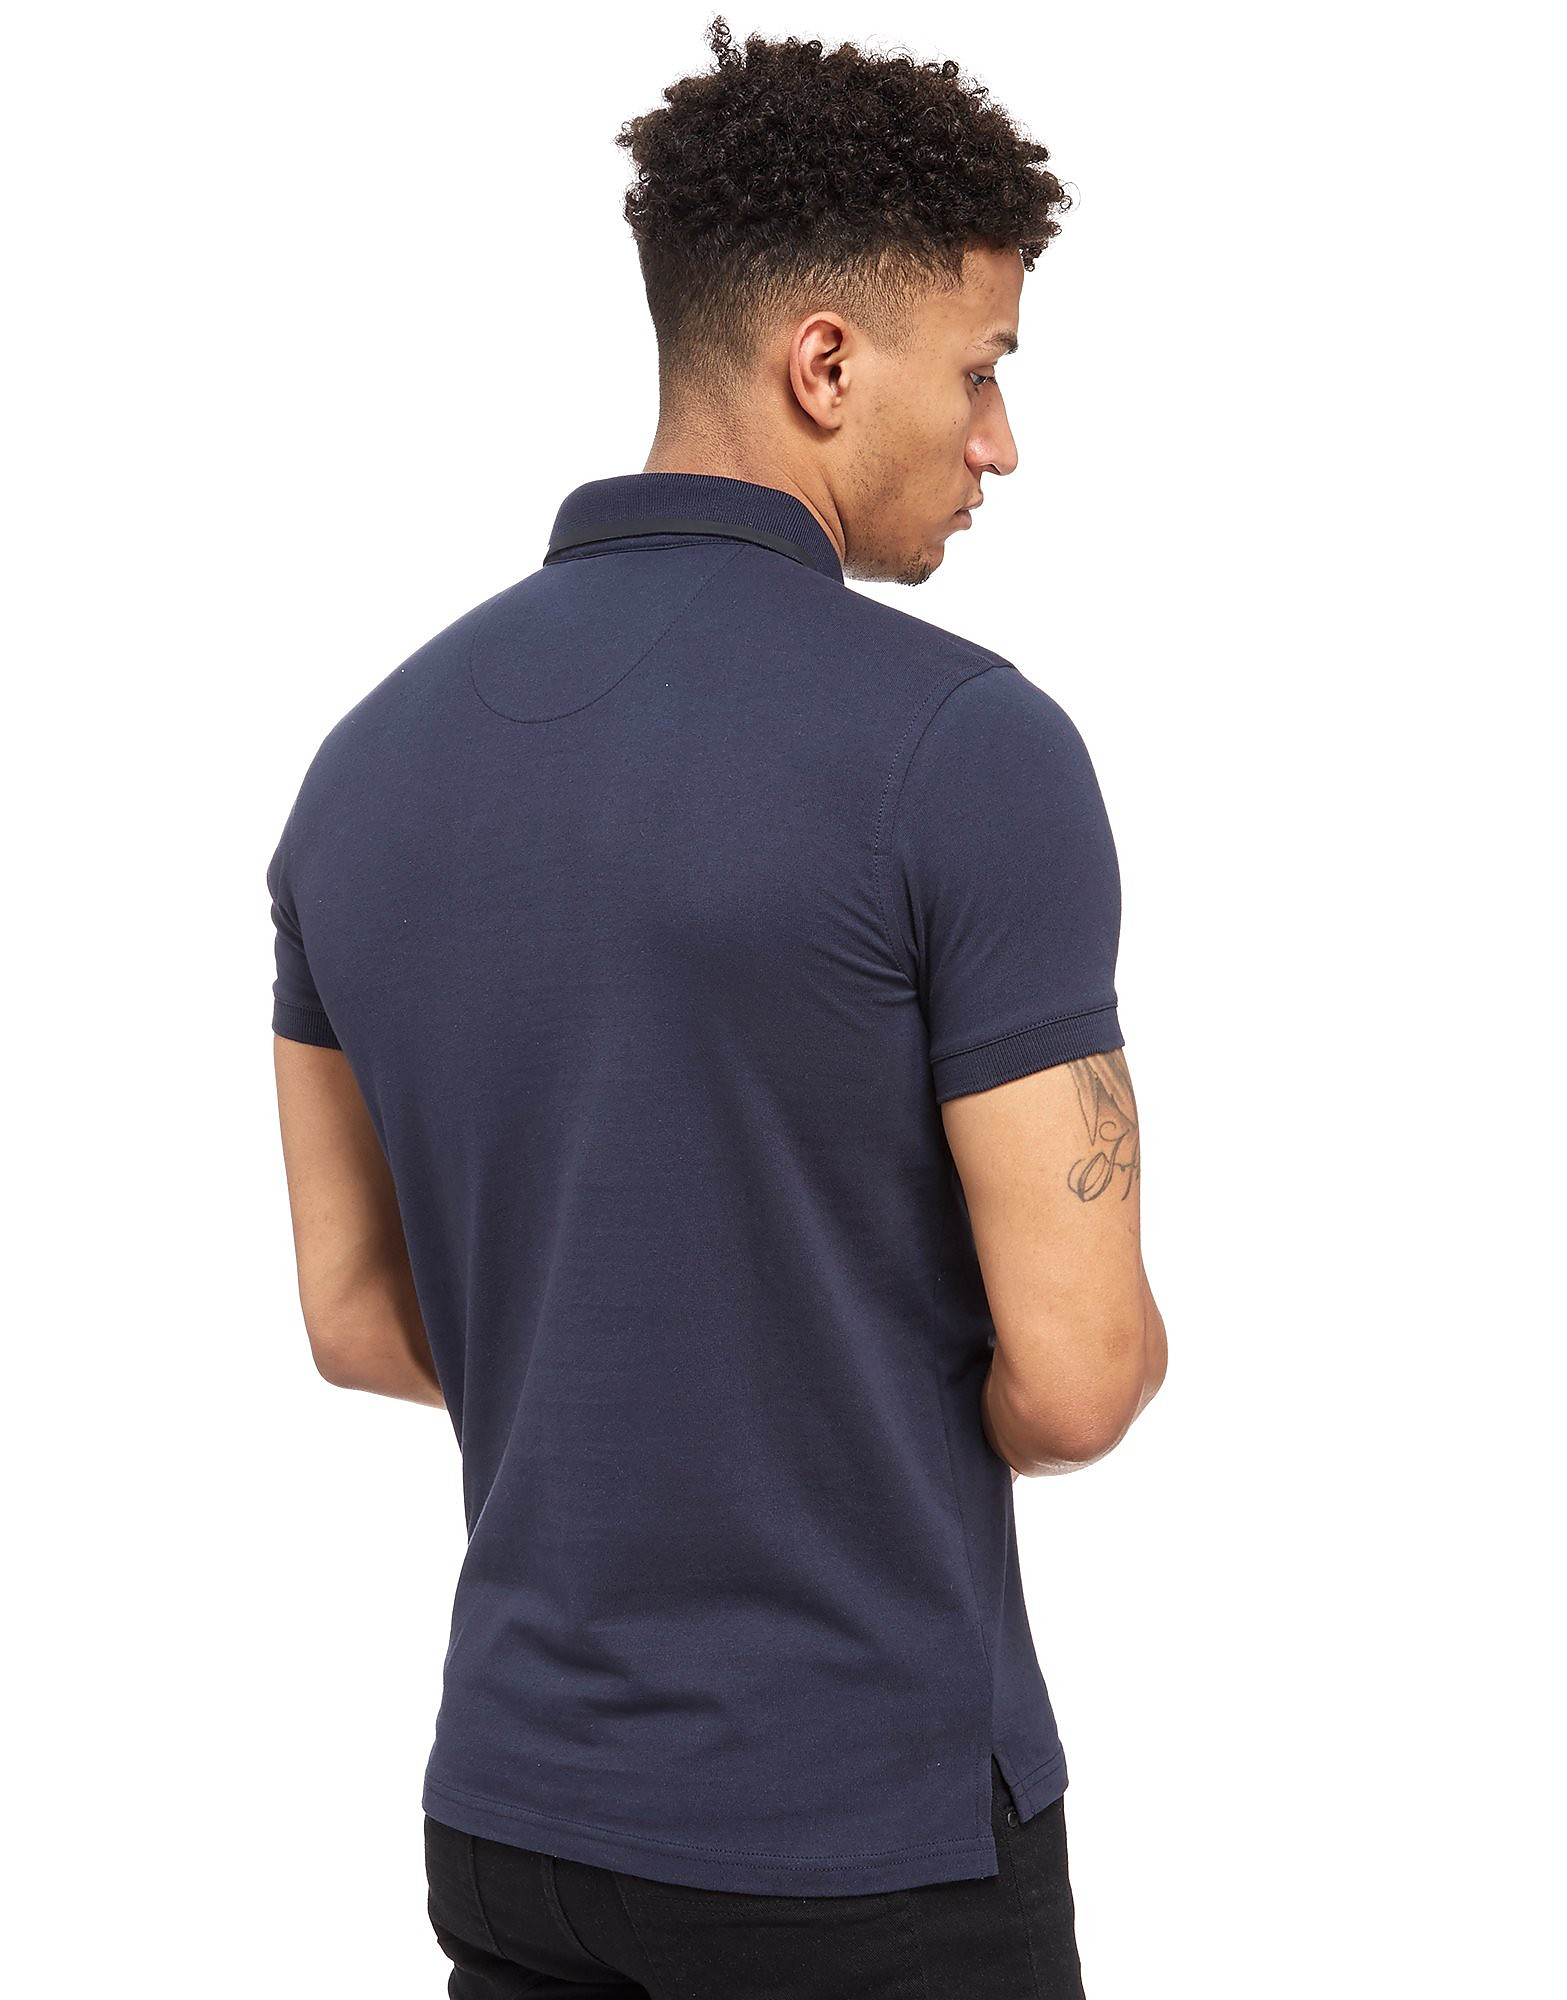 Nanny State Capped Polo Shirt